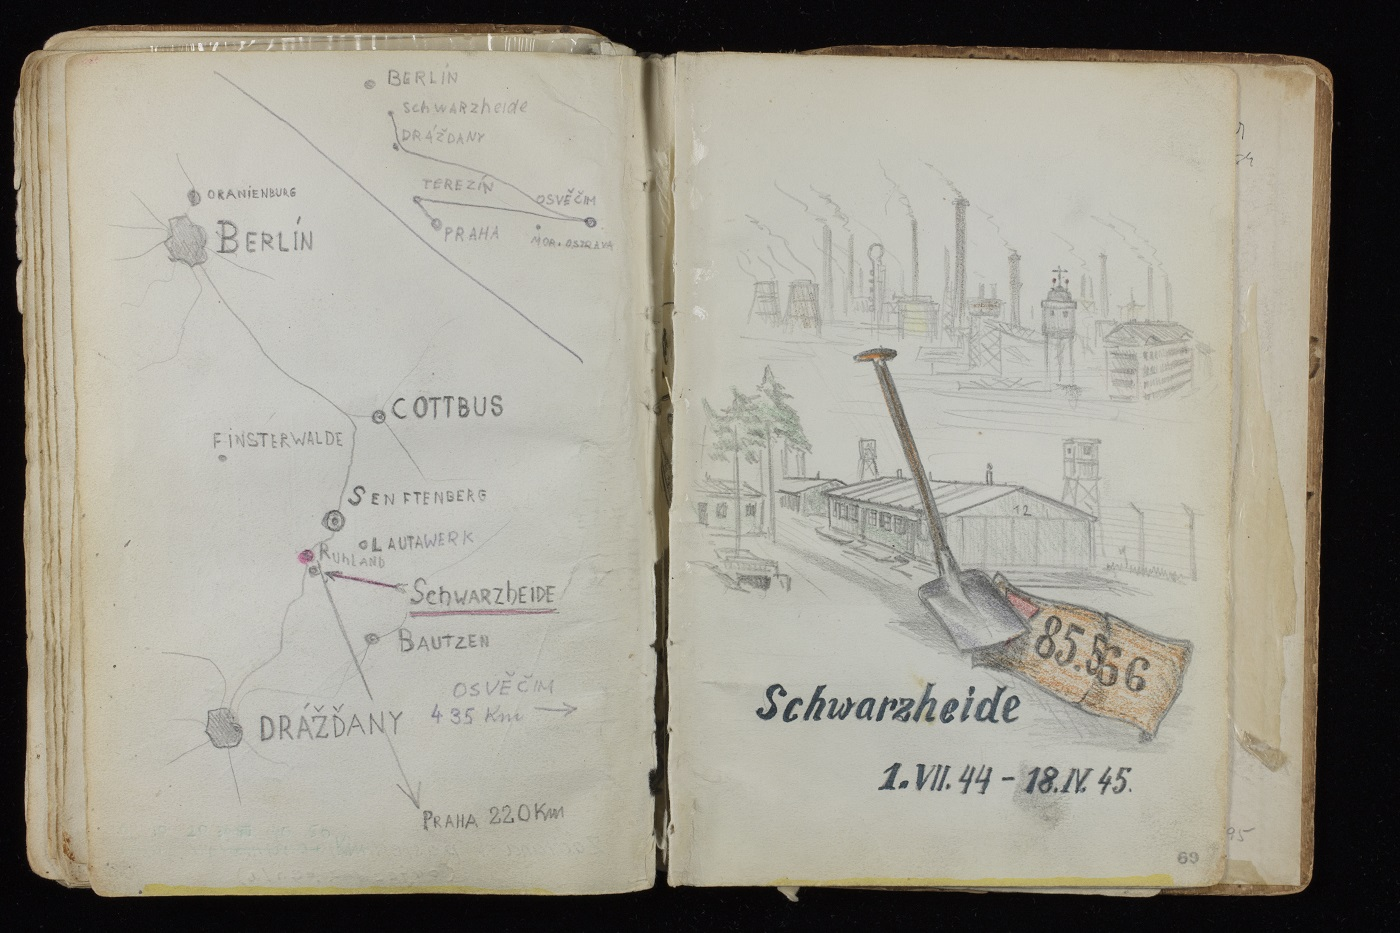 Open page of Alfred Kantor's sketchbook featuring a map of Schwarzheide